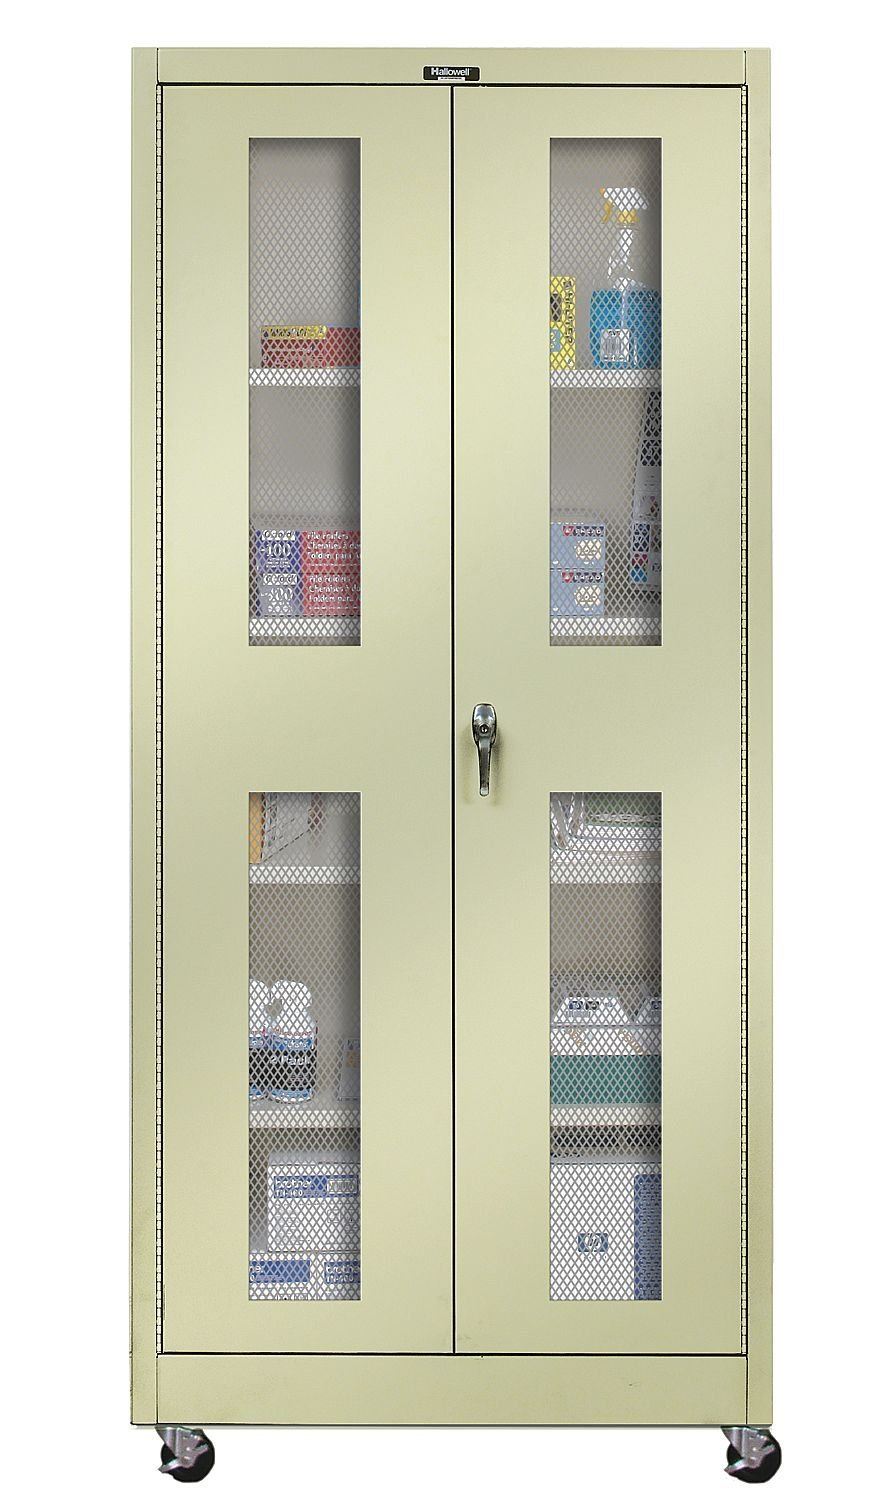 Amazon.com : 800 Series 2 Door Storage Cabinet Color: Parchment : Modular Storage Systems : Office Products